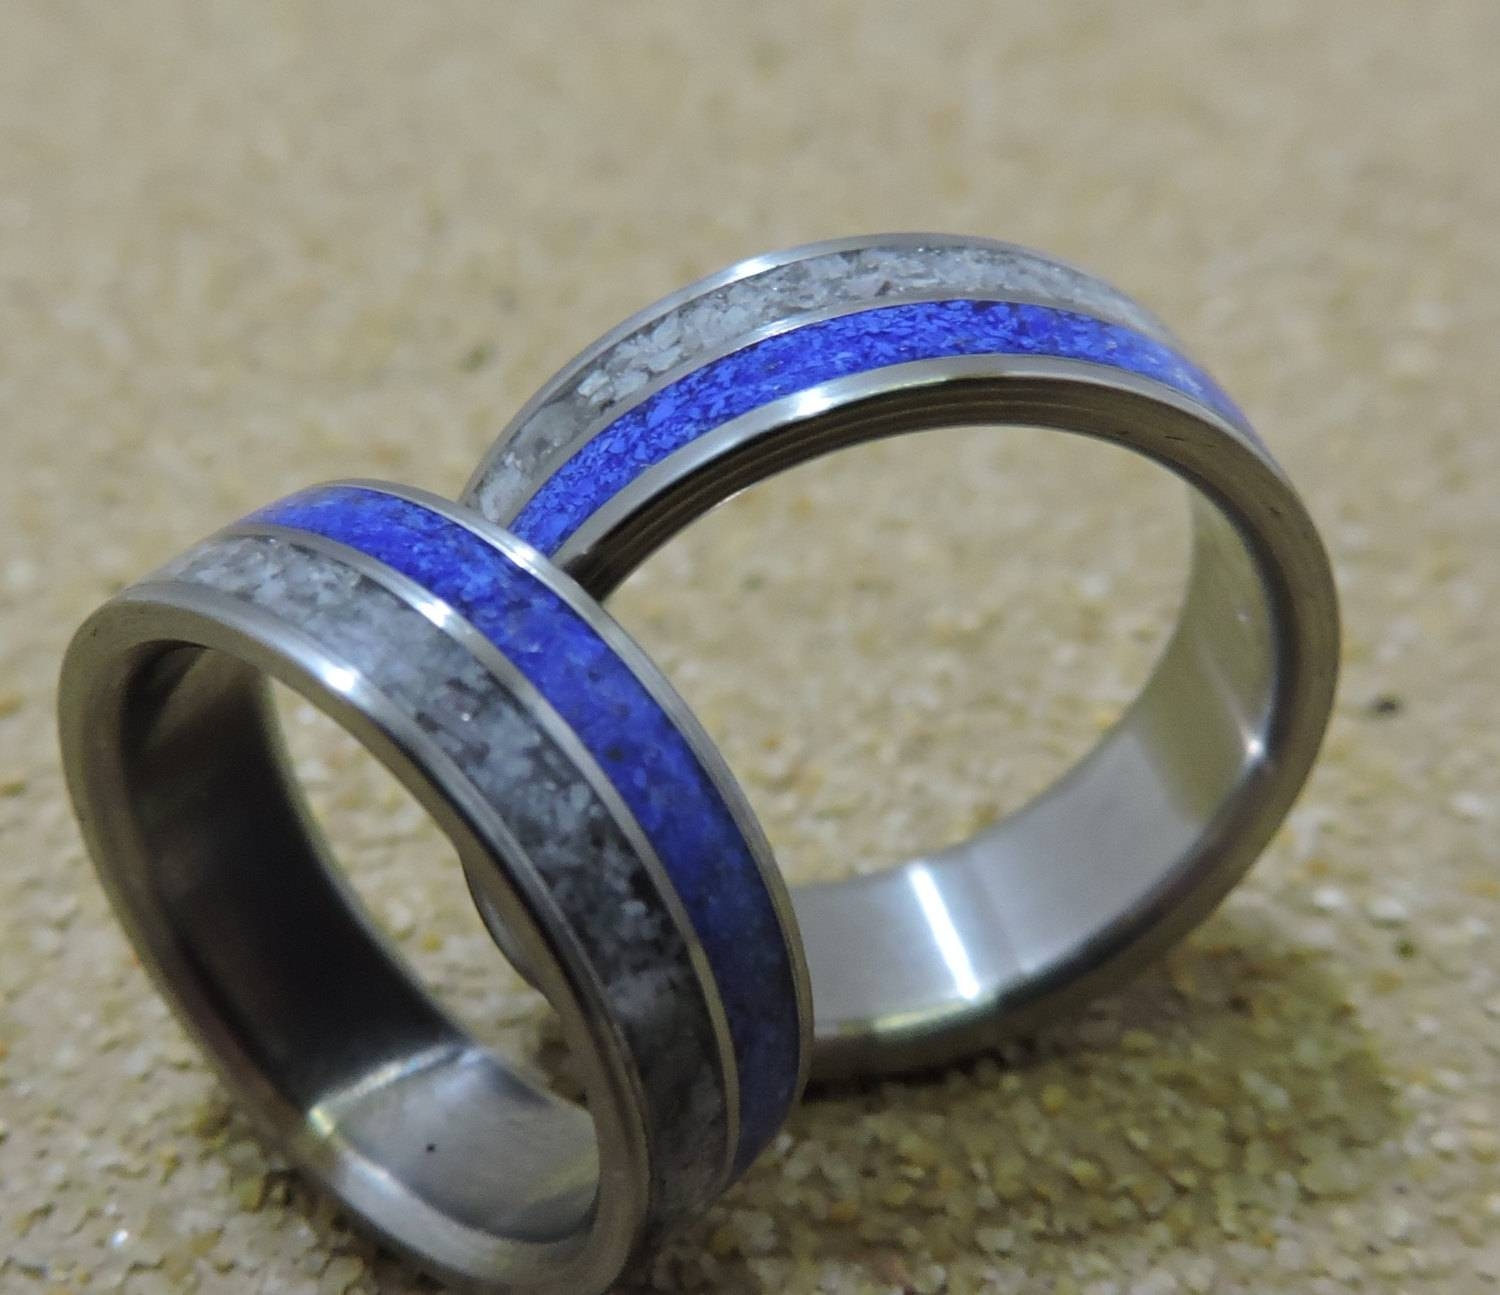 Titanium Rings, Wedding Rings, His And Hers Rings, Wedding Band Throughout Mens Handmade Wedding Bands (View 13 of 15)